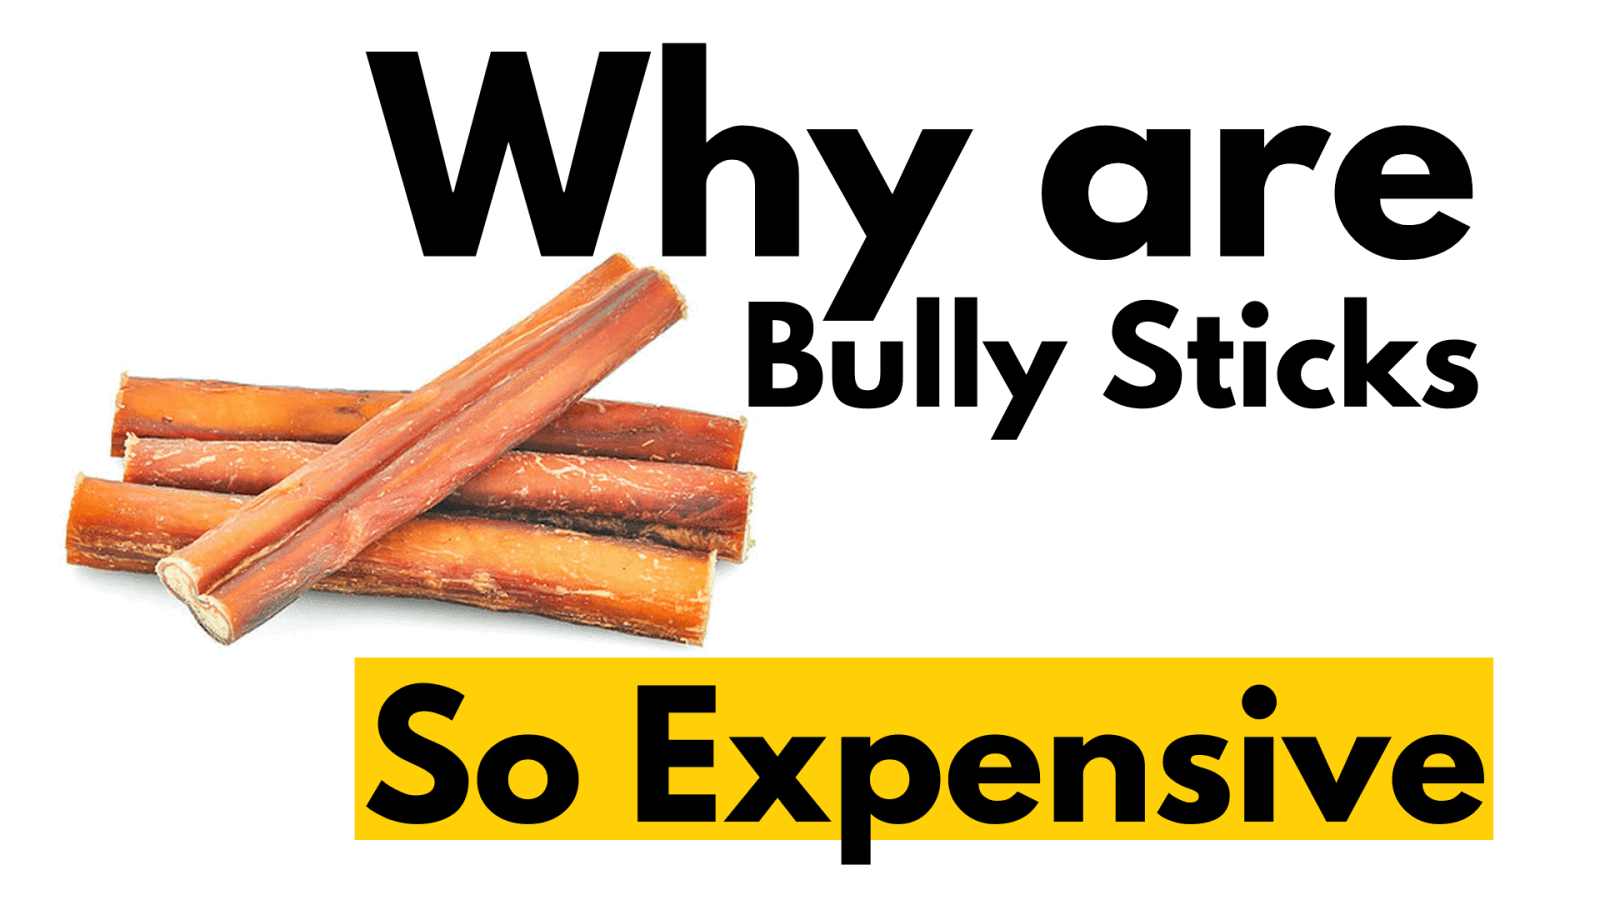 Why are bully sticks so expensive